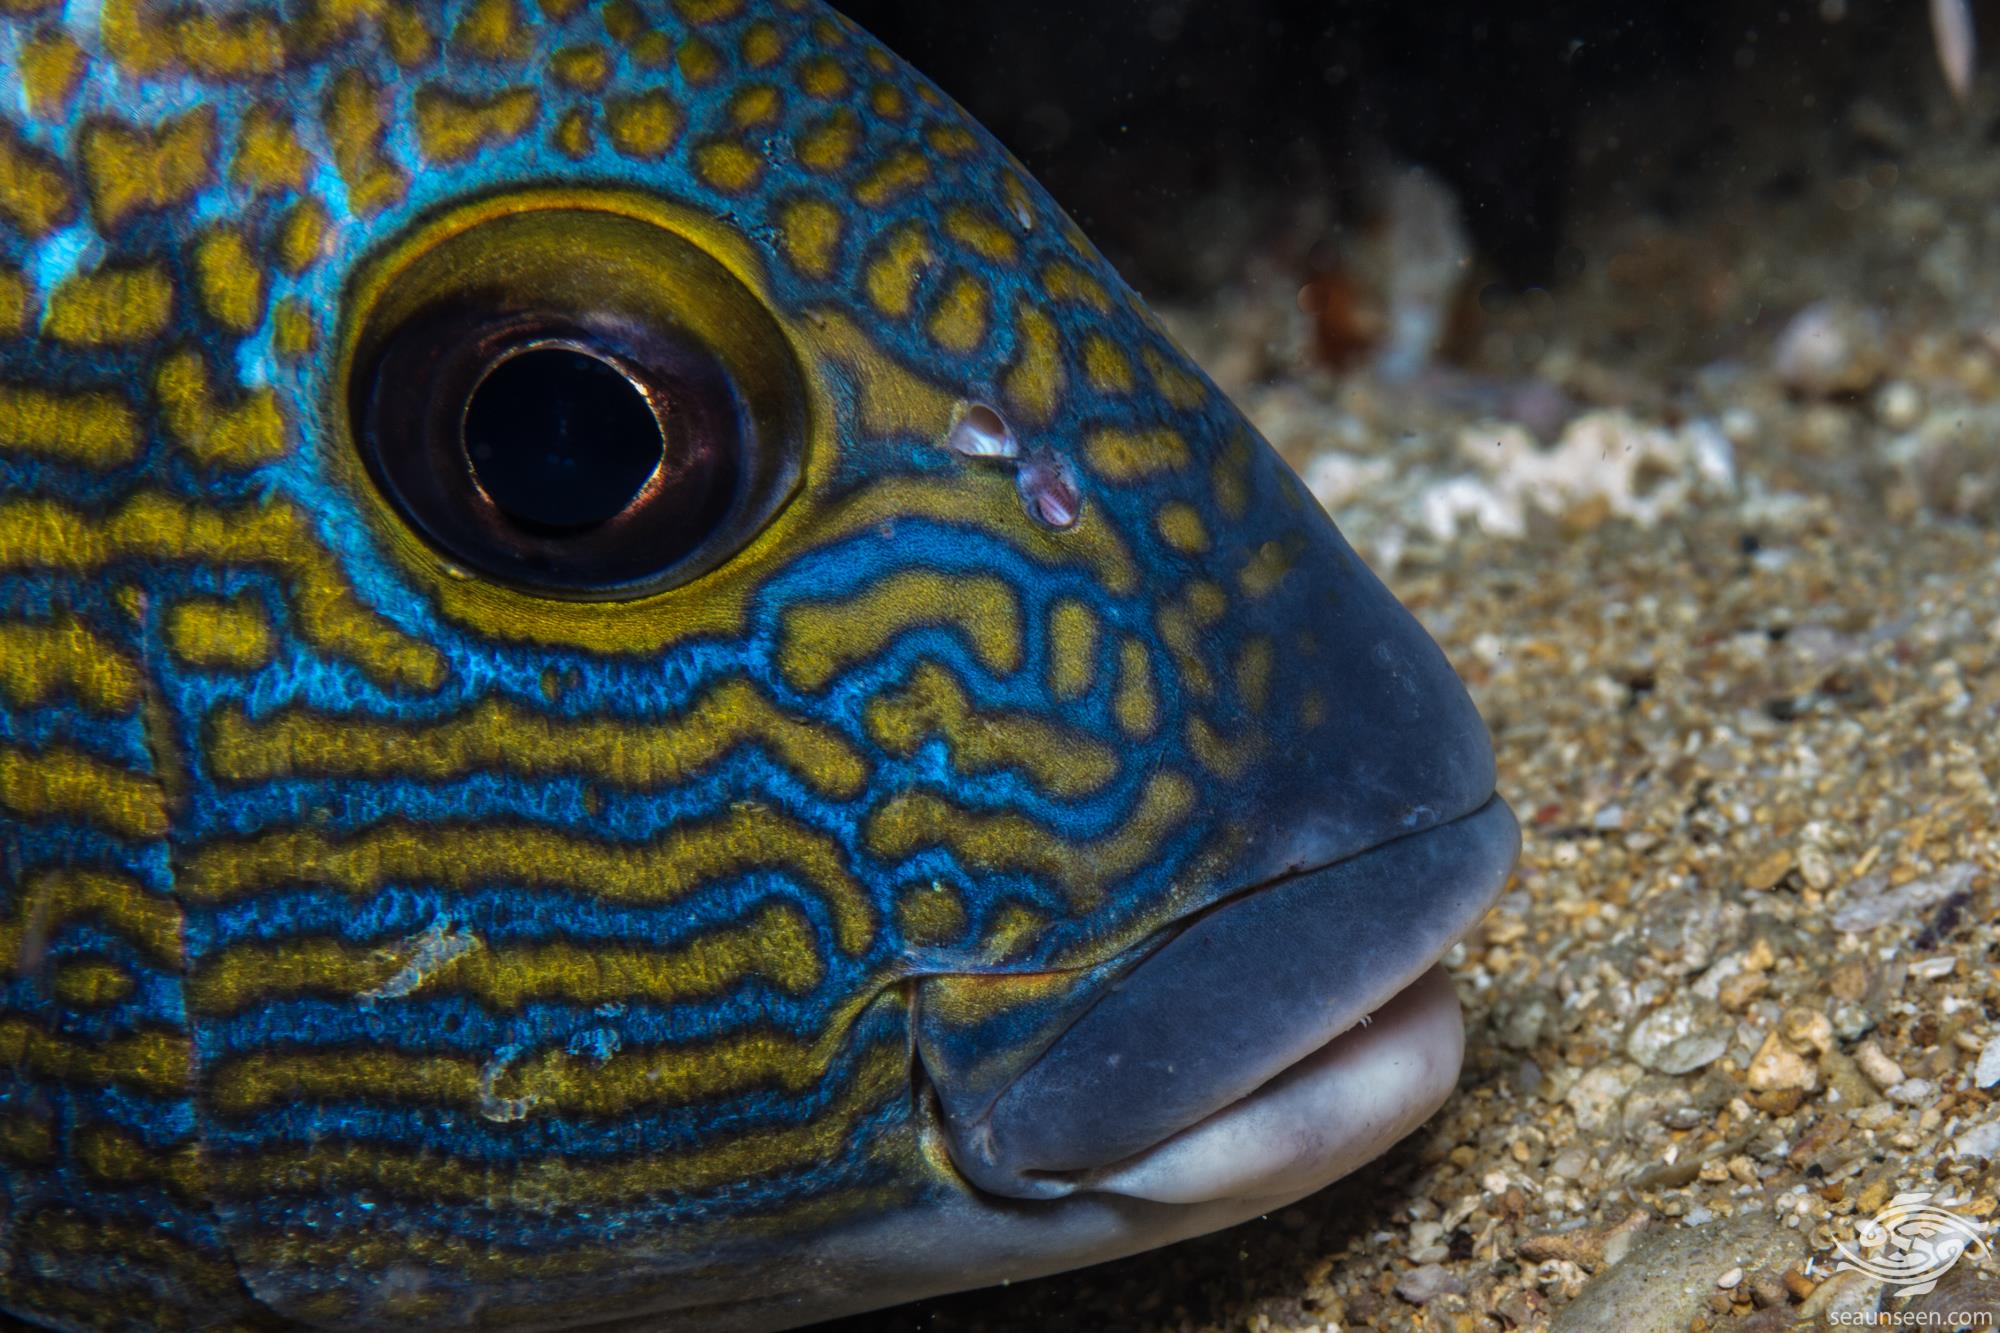 goldspotted sweetlips Plectorhinchus flavomaculatus, also known as the Lemonfish